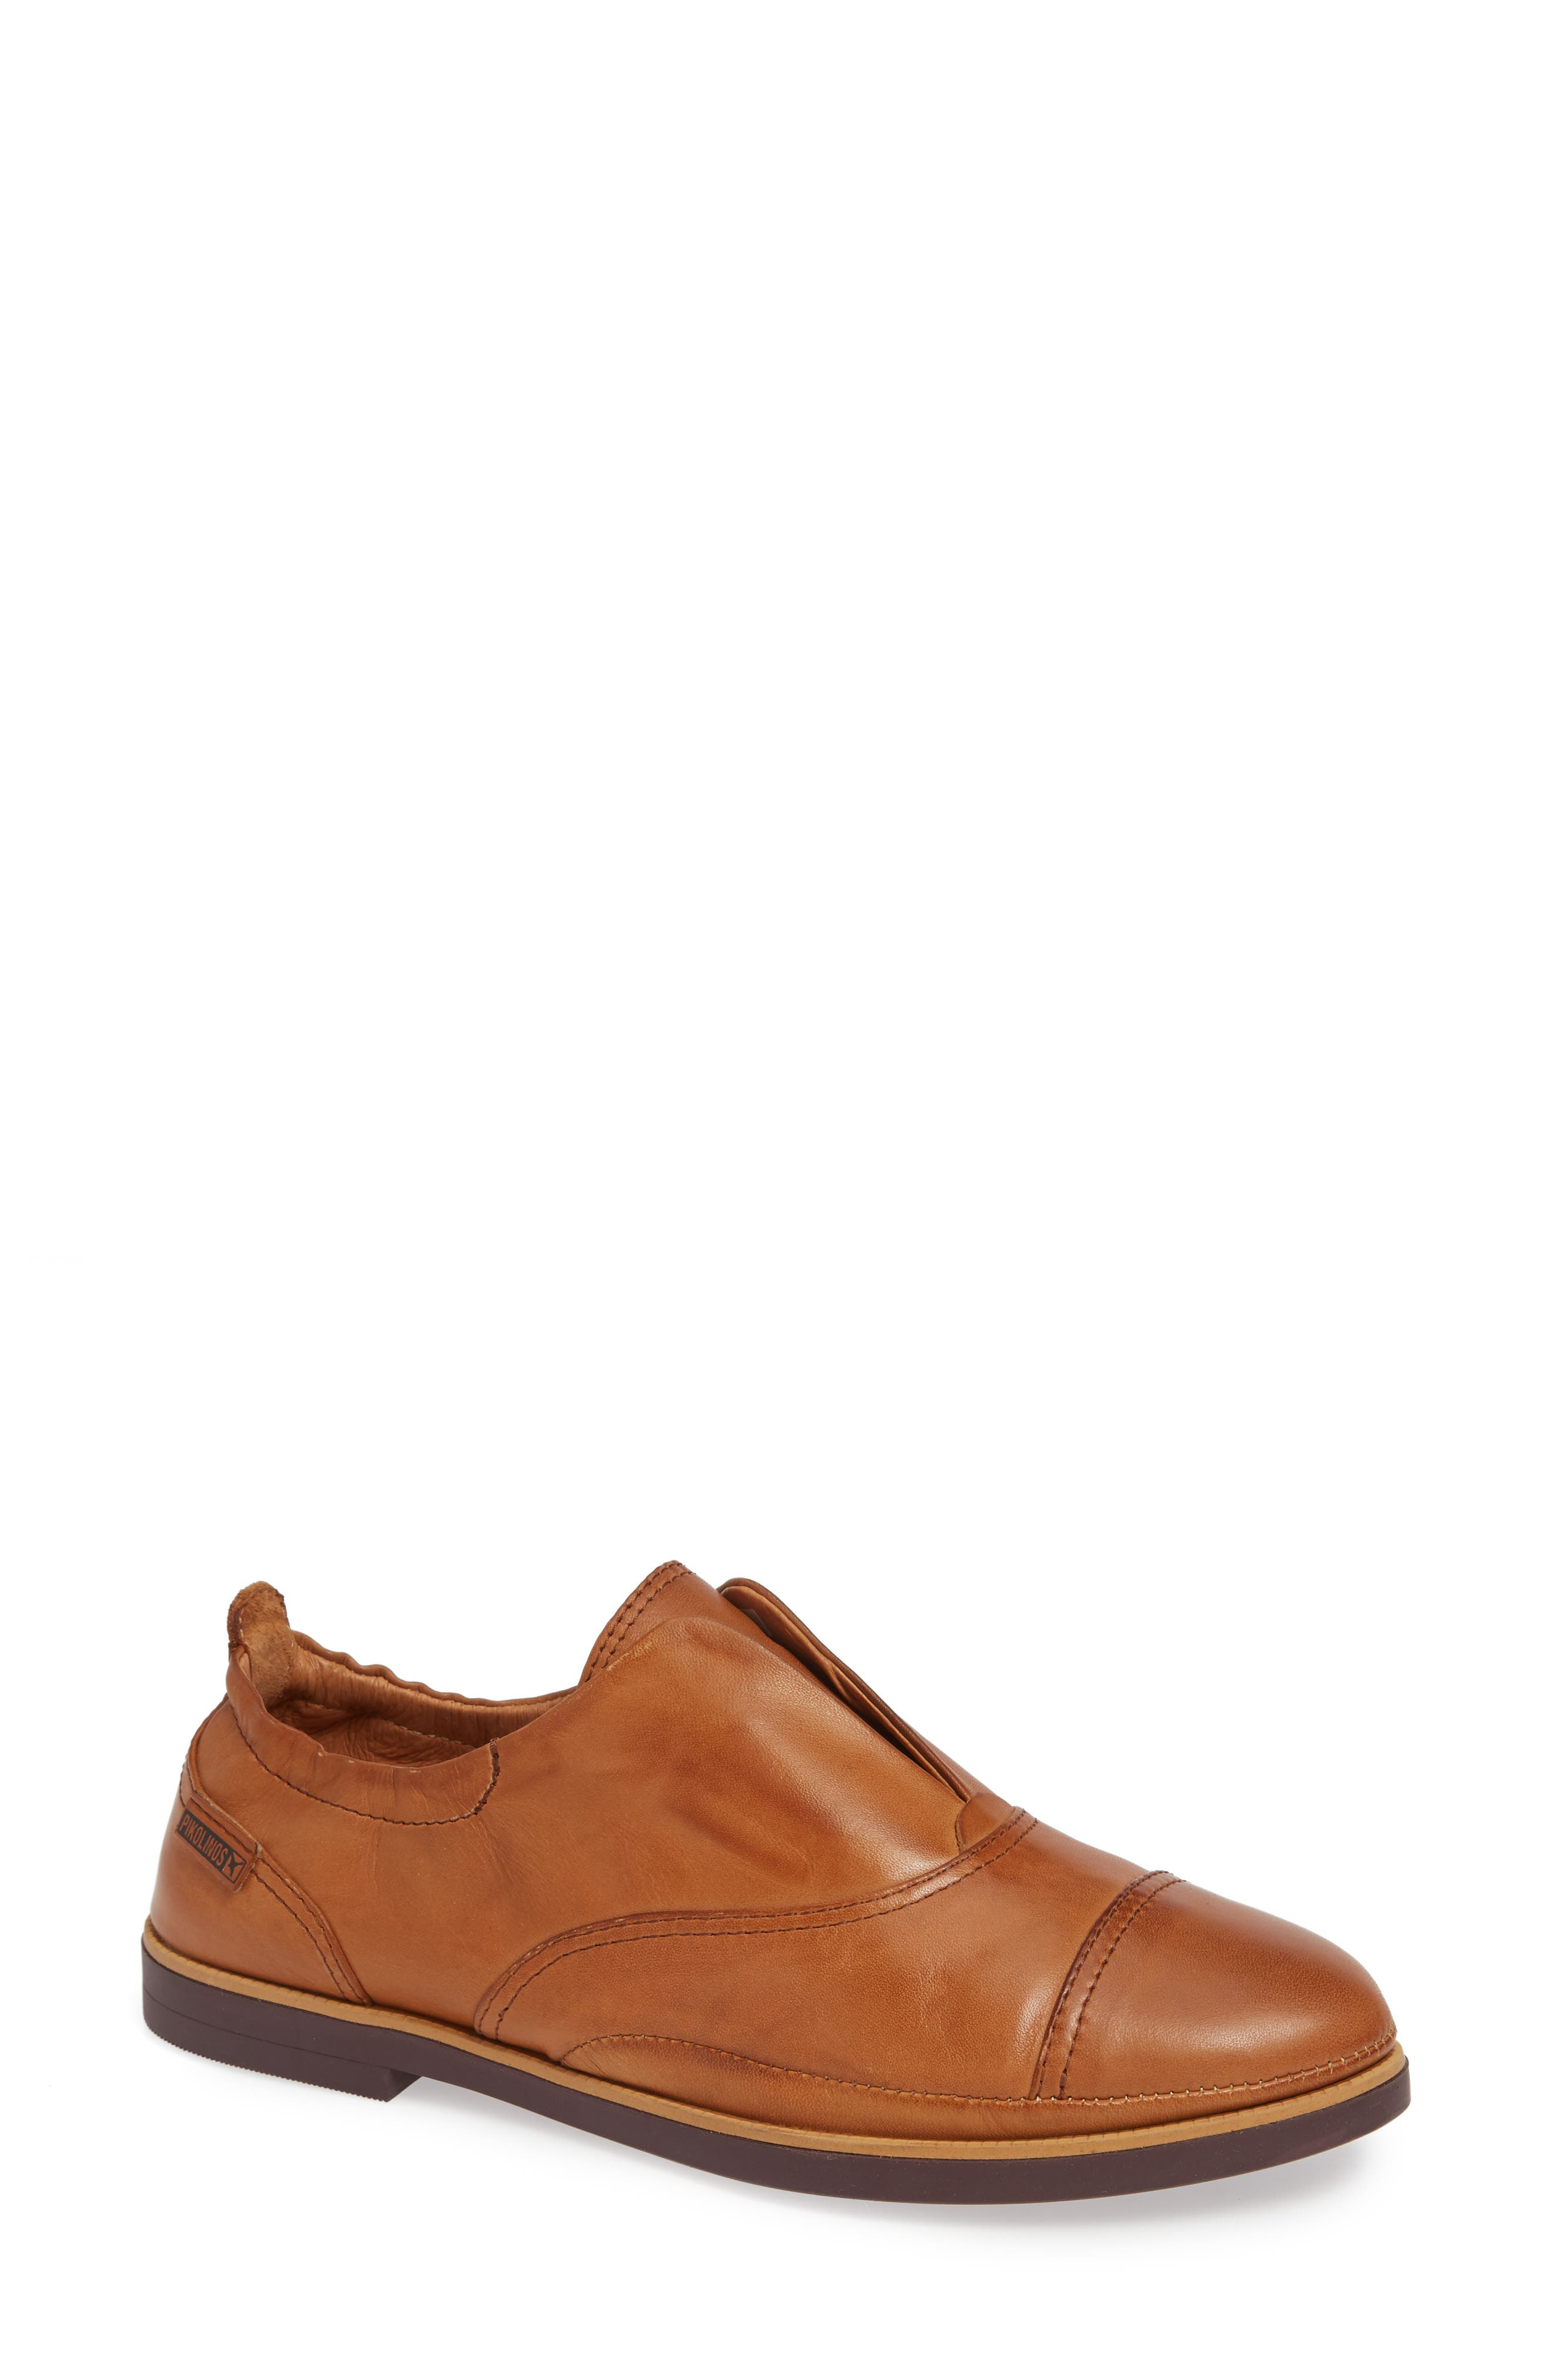 Santorini Colorblock Laceless Oxford,                             Main thumbnail 1, color,                             BRANDY LEATHER